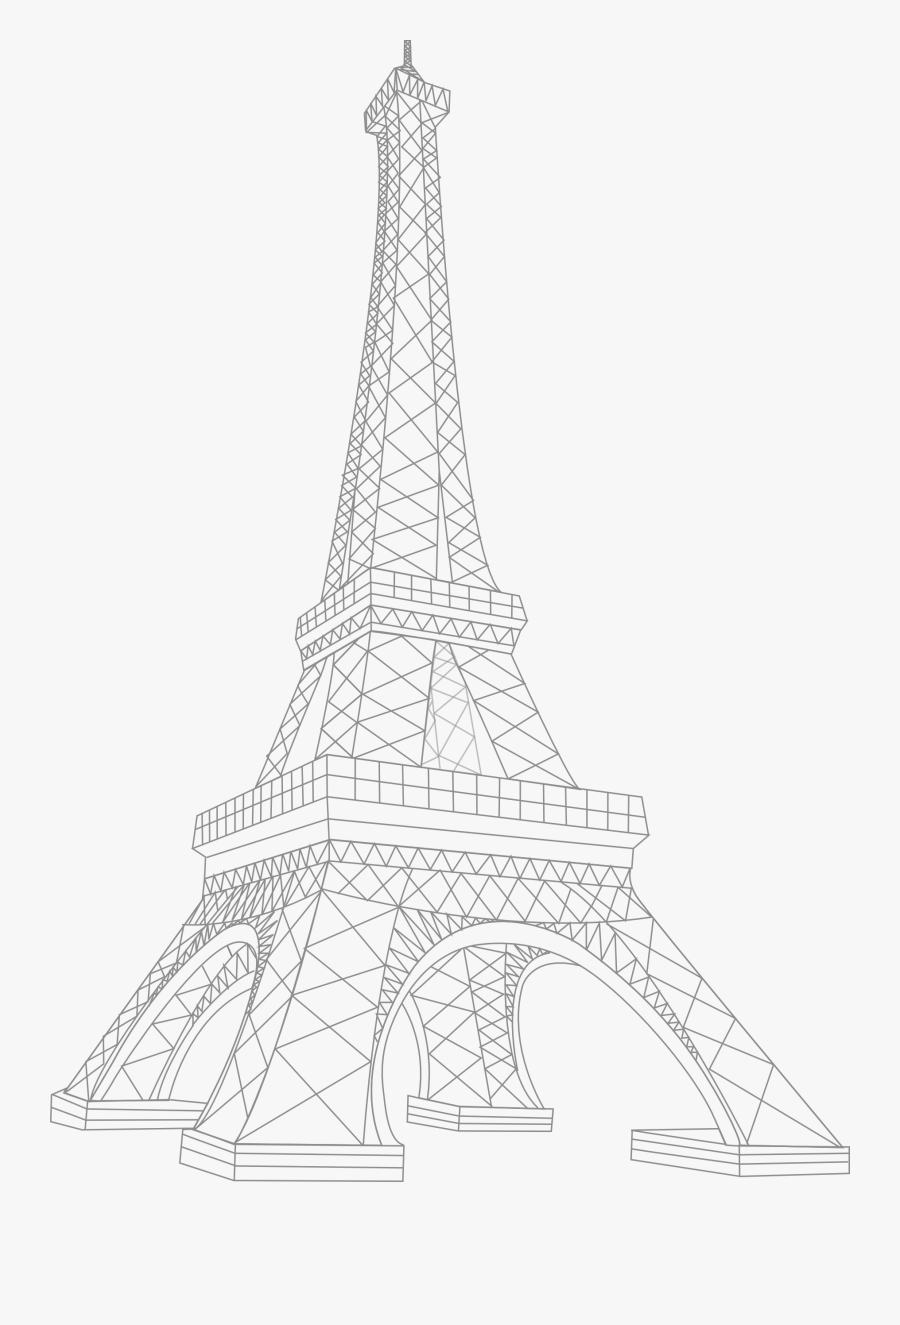 Paris Tower Drawing At Getdrawings White Eiffel Tower- - White Eiffel Tower Png, Transparent Clipart